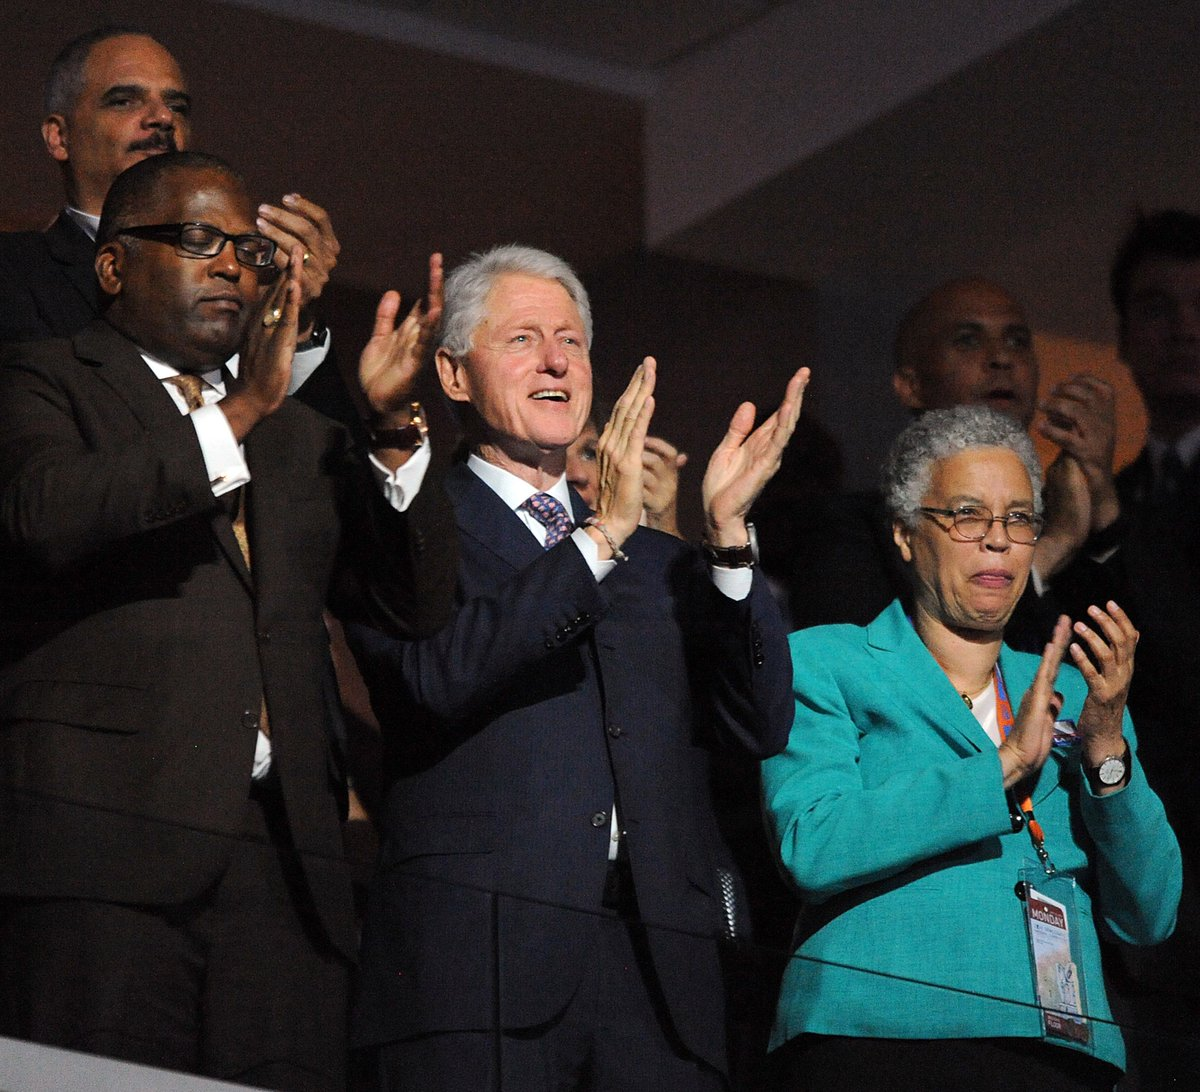 It looks like the Clintons have signaled who should be Chicago's mayor in 2019: @John_Kass